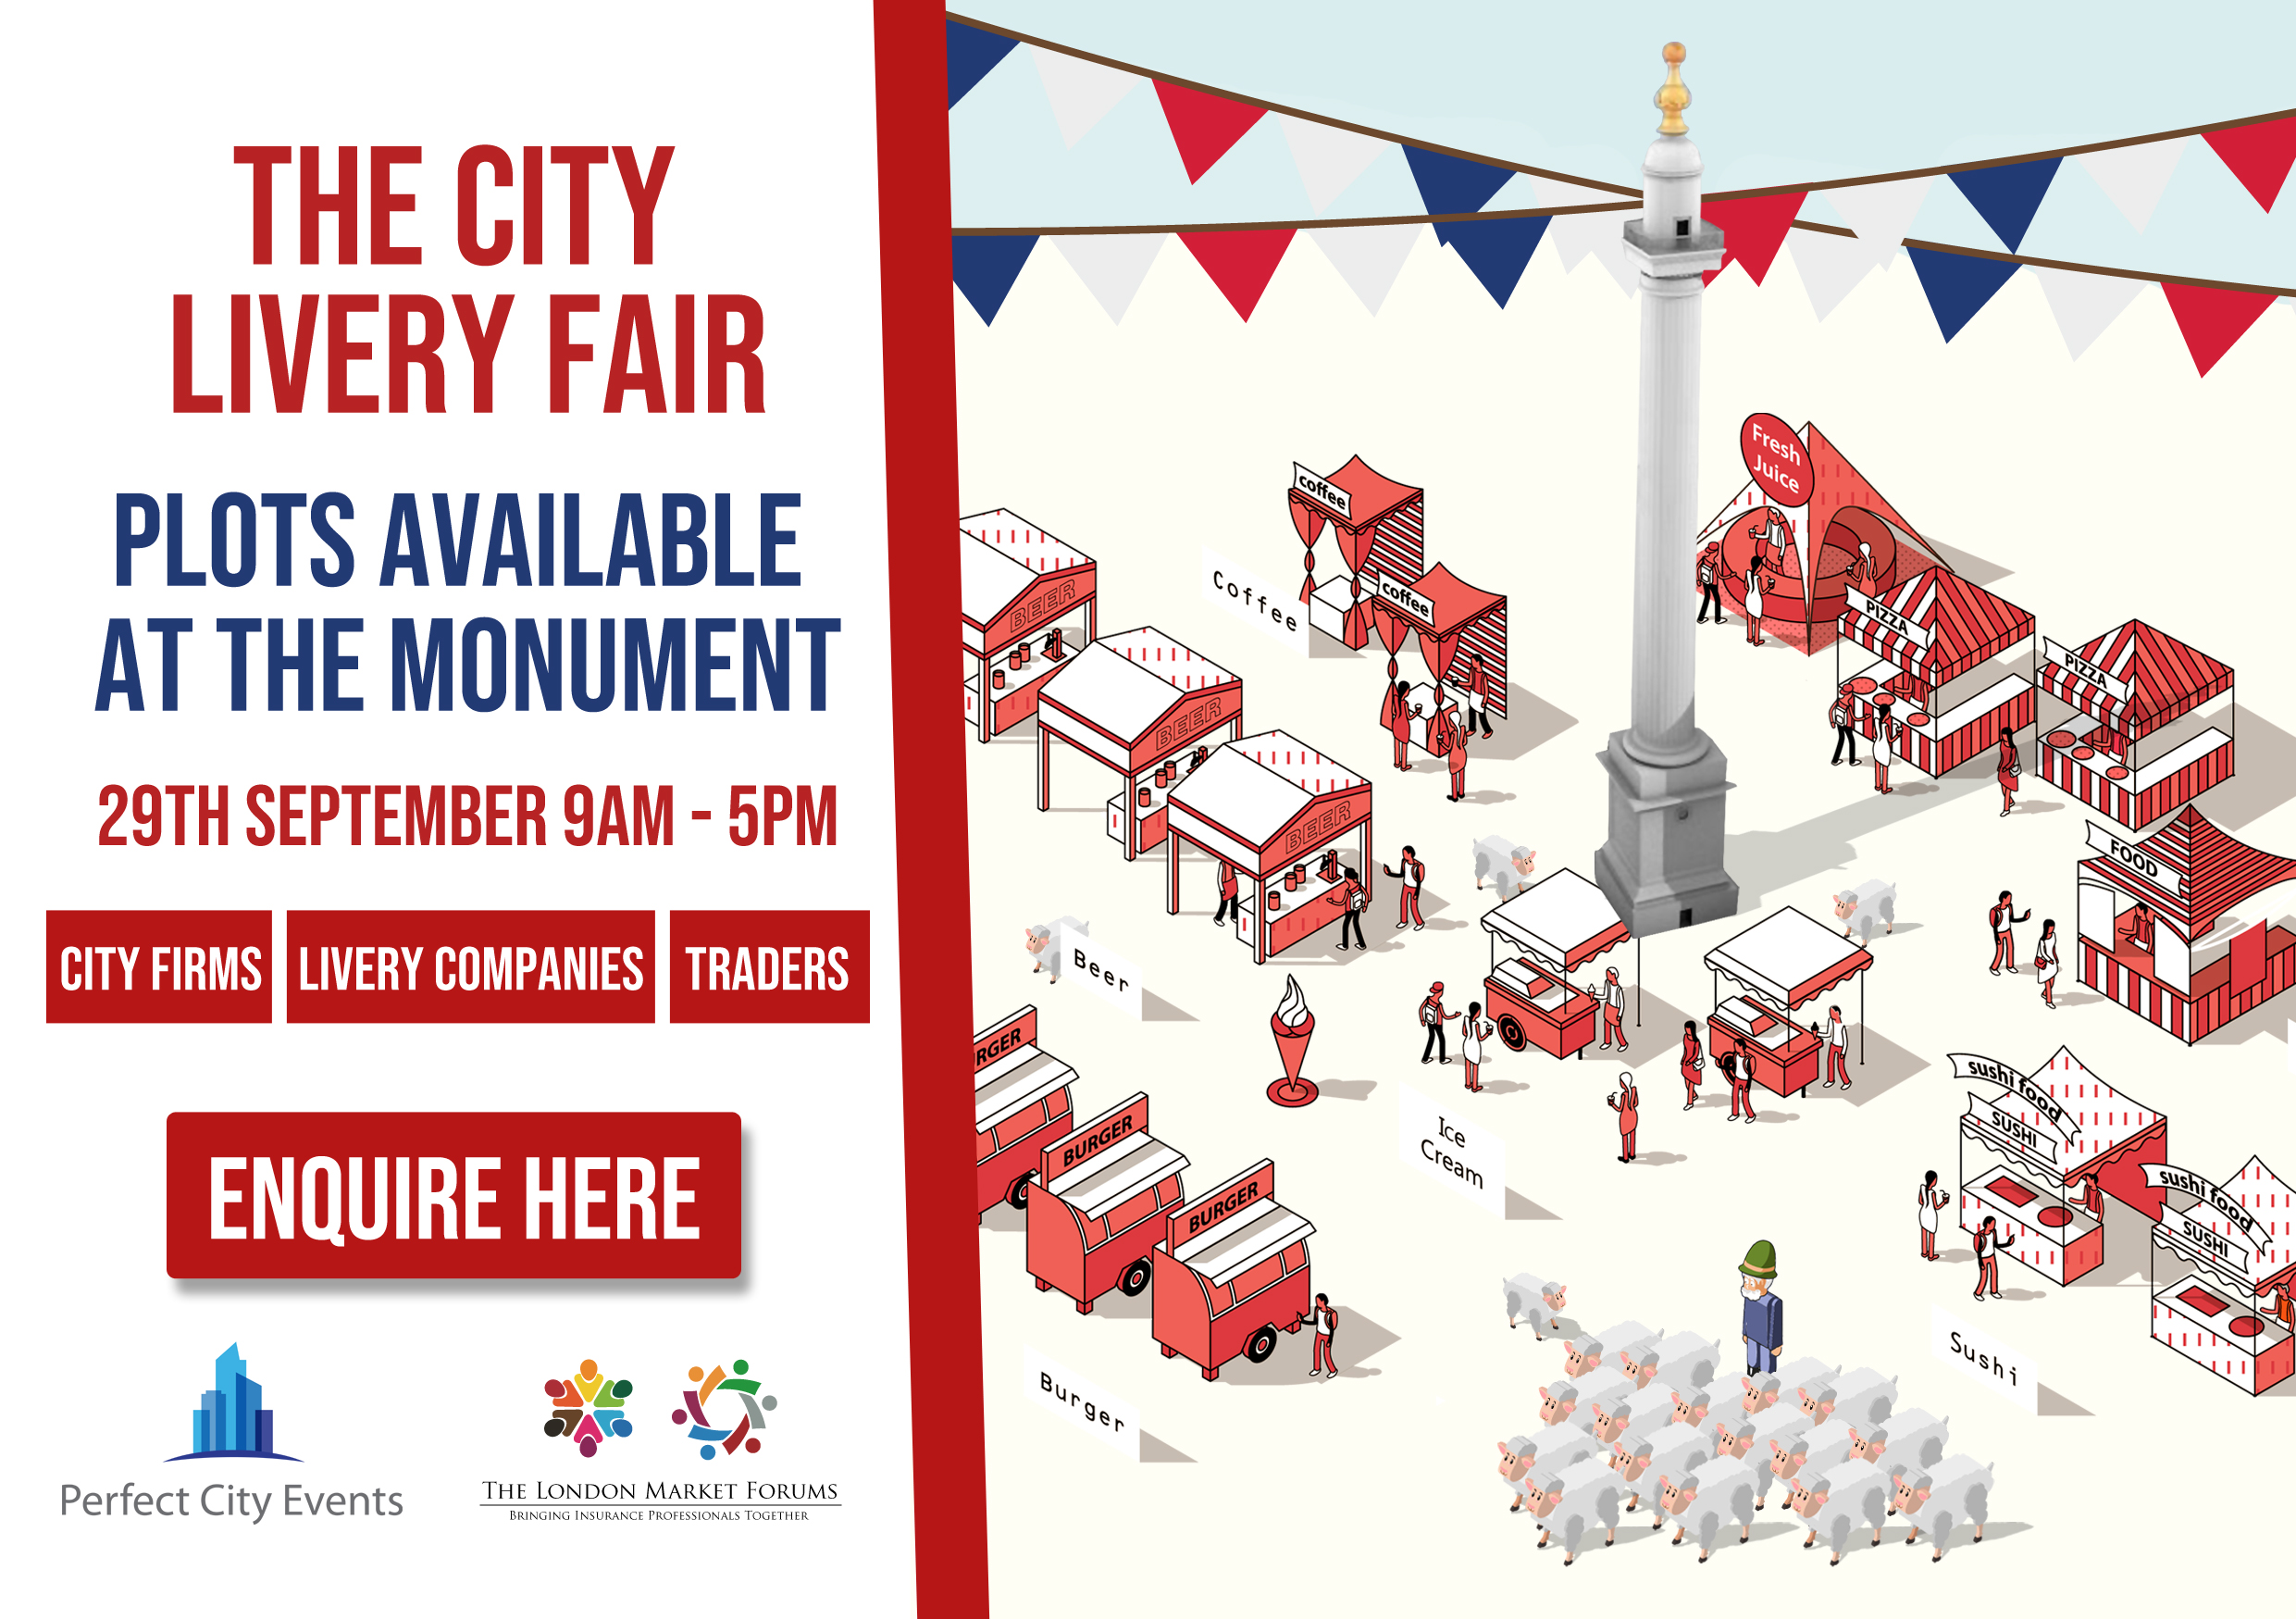 The City Livery Fair - 29th September 2019